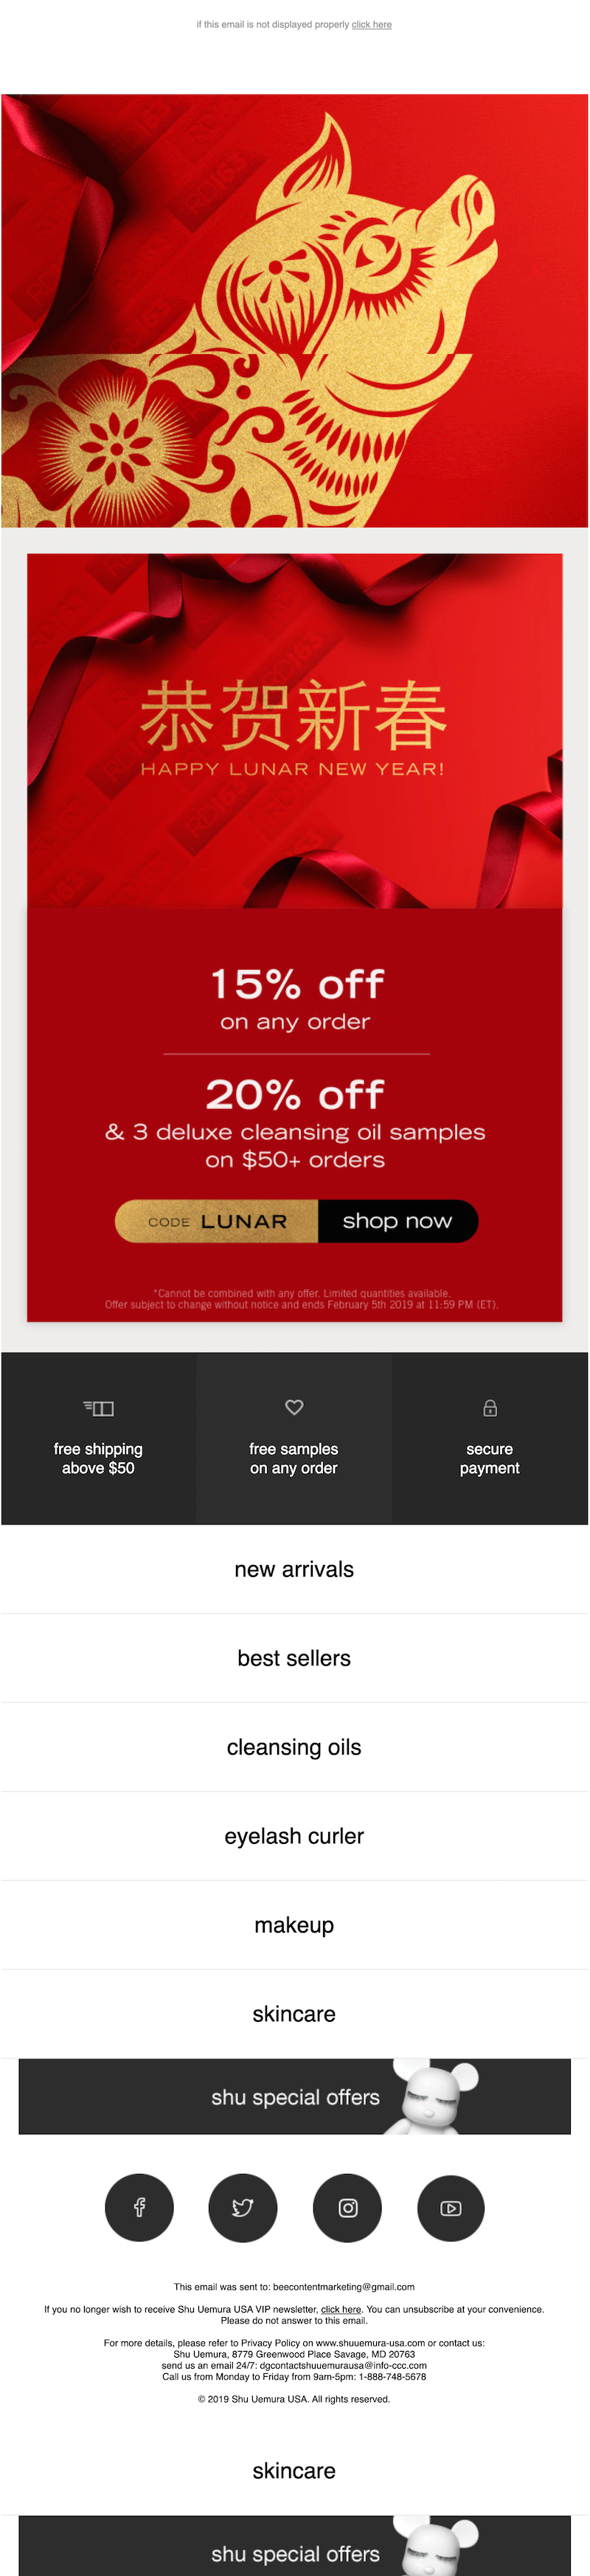 lunar new year email